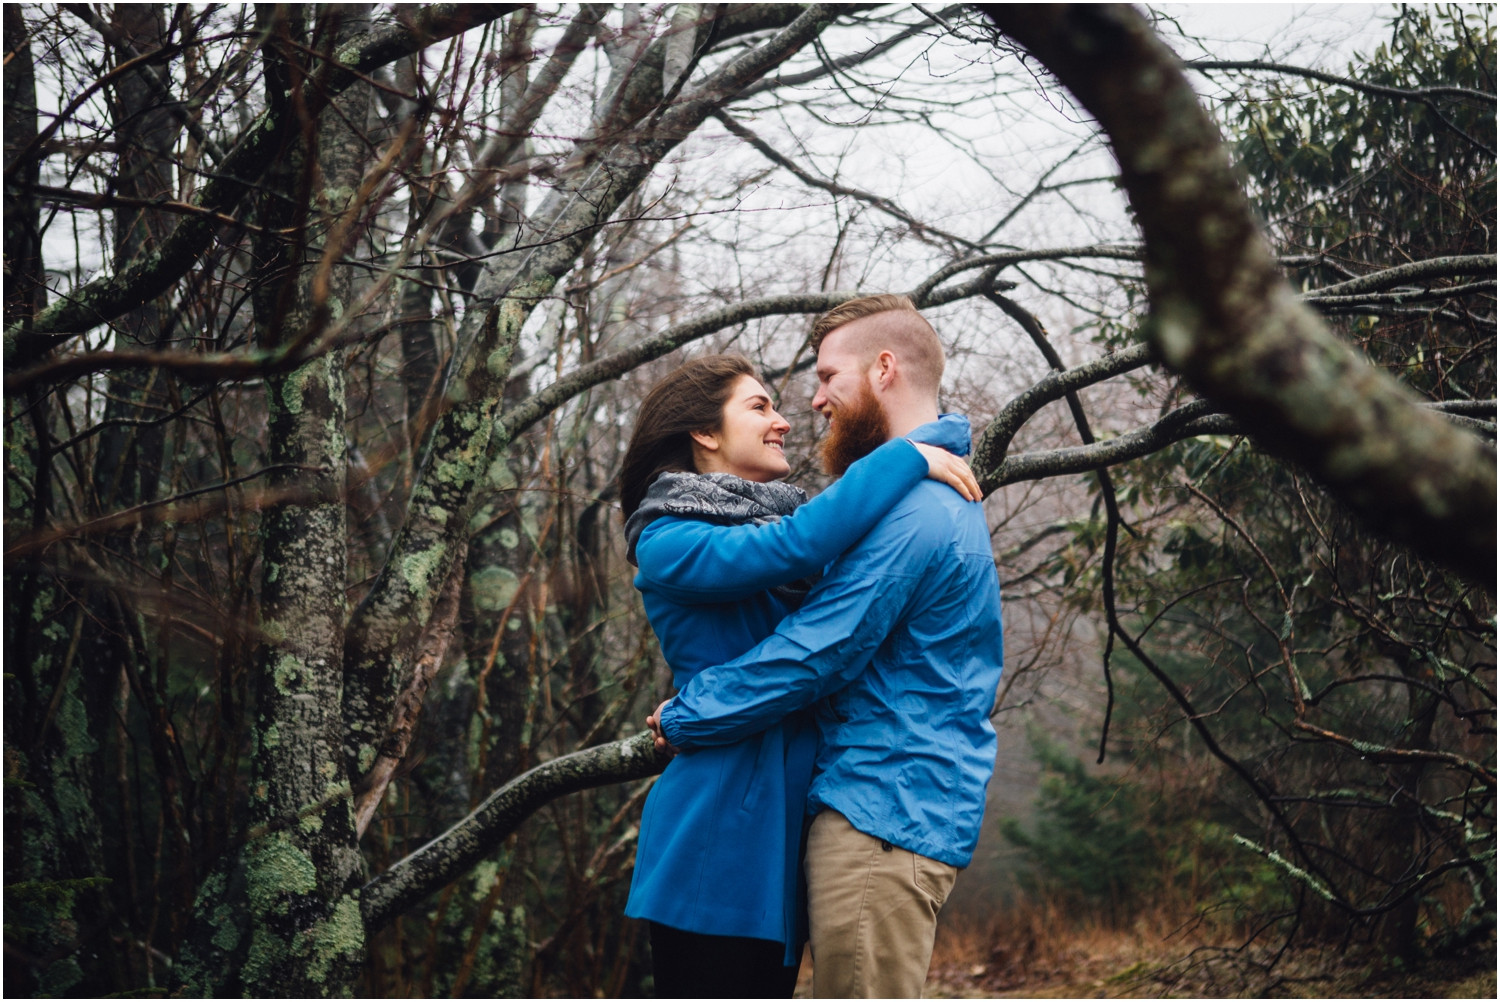 katy-sergent-photography-grayson-highlands-engagement-session-mouth-of-wilson-virginia-damascus-appalachian-trail-tennessee-wedding-elopement_0002.jpg